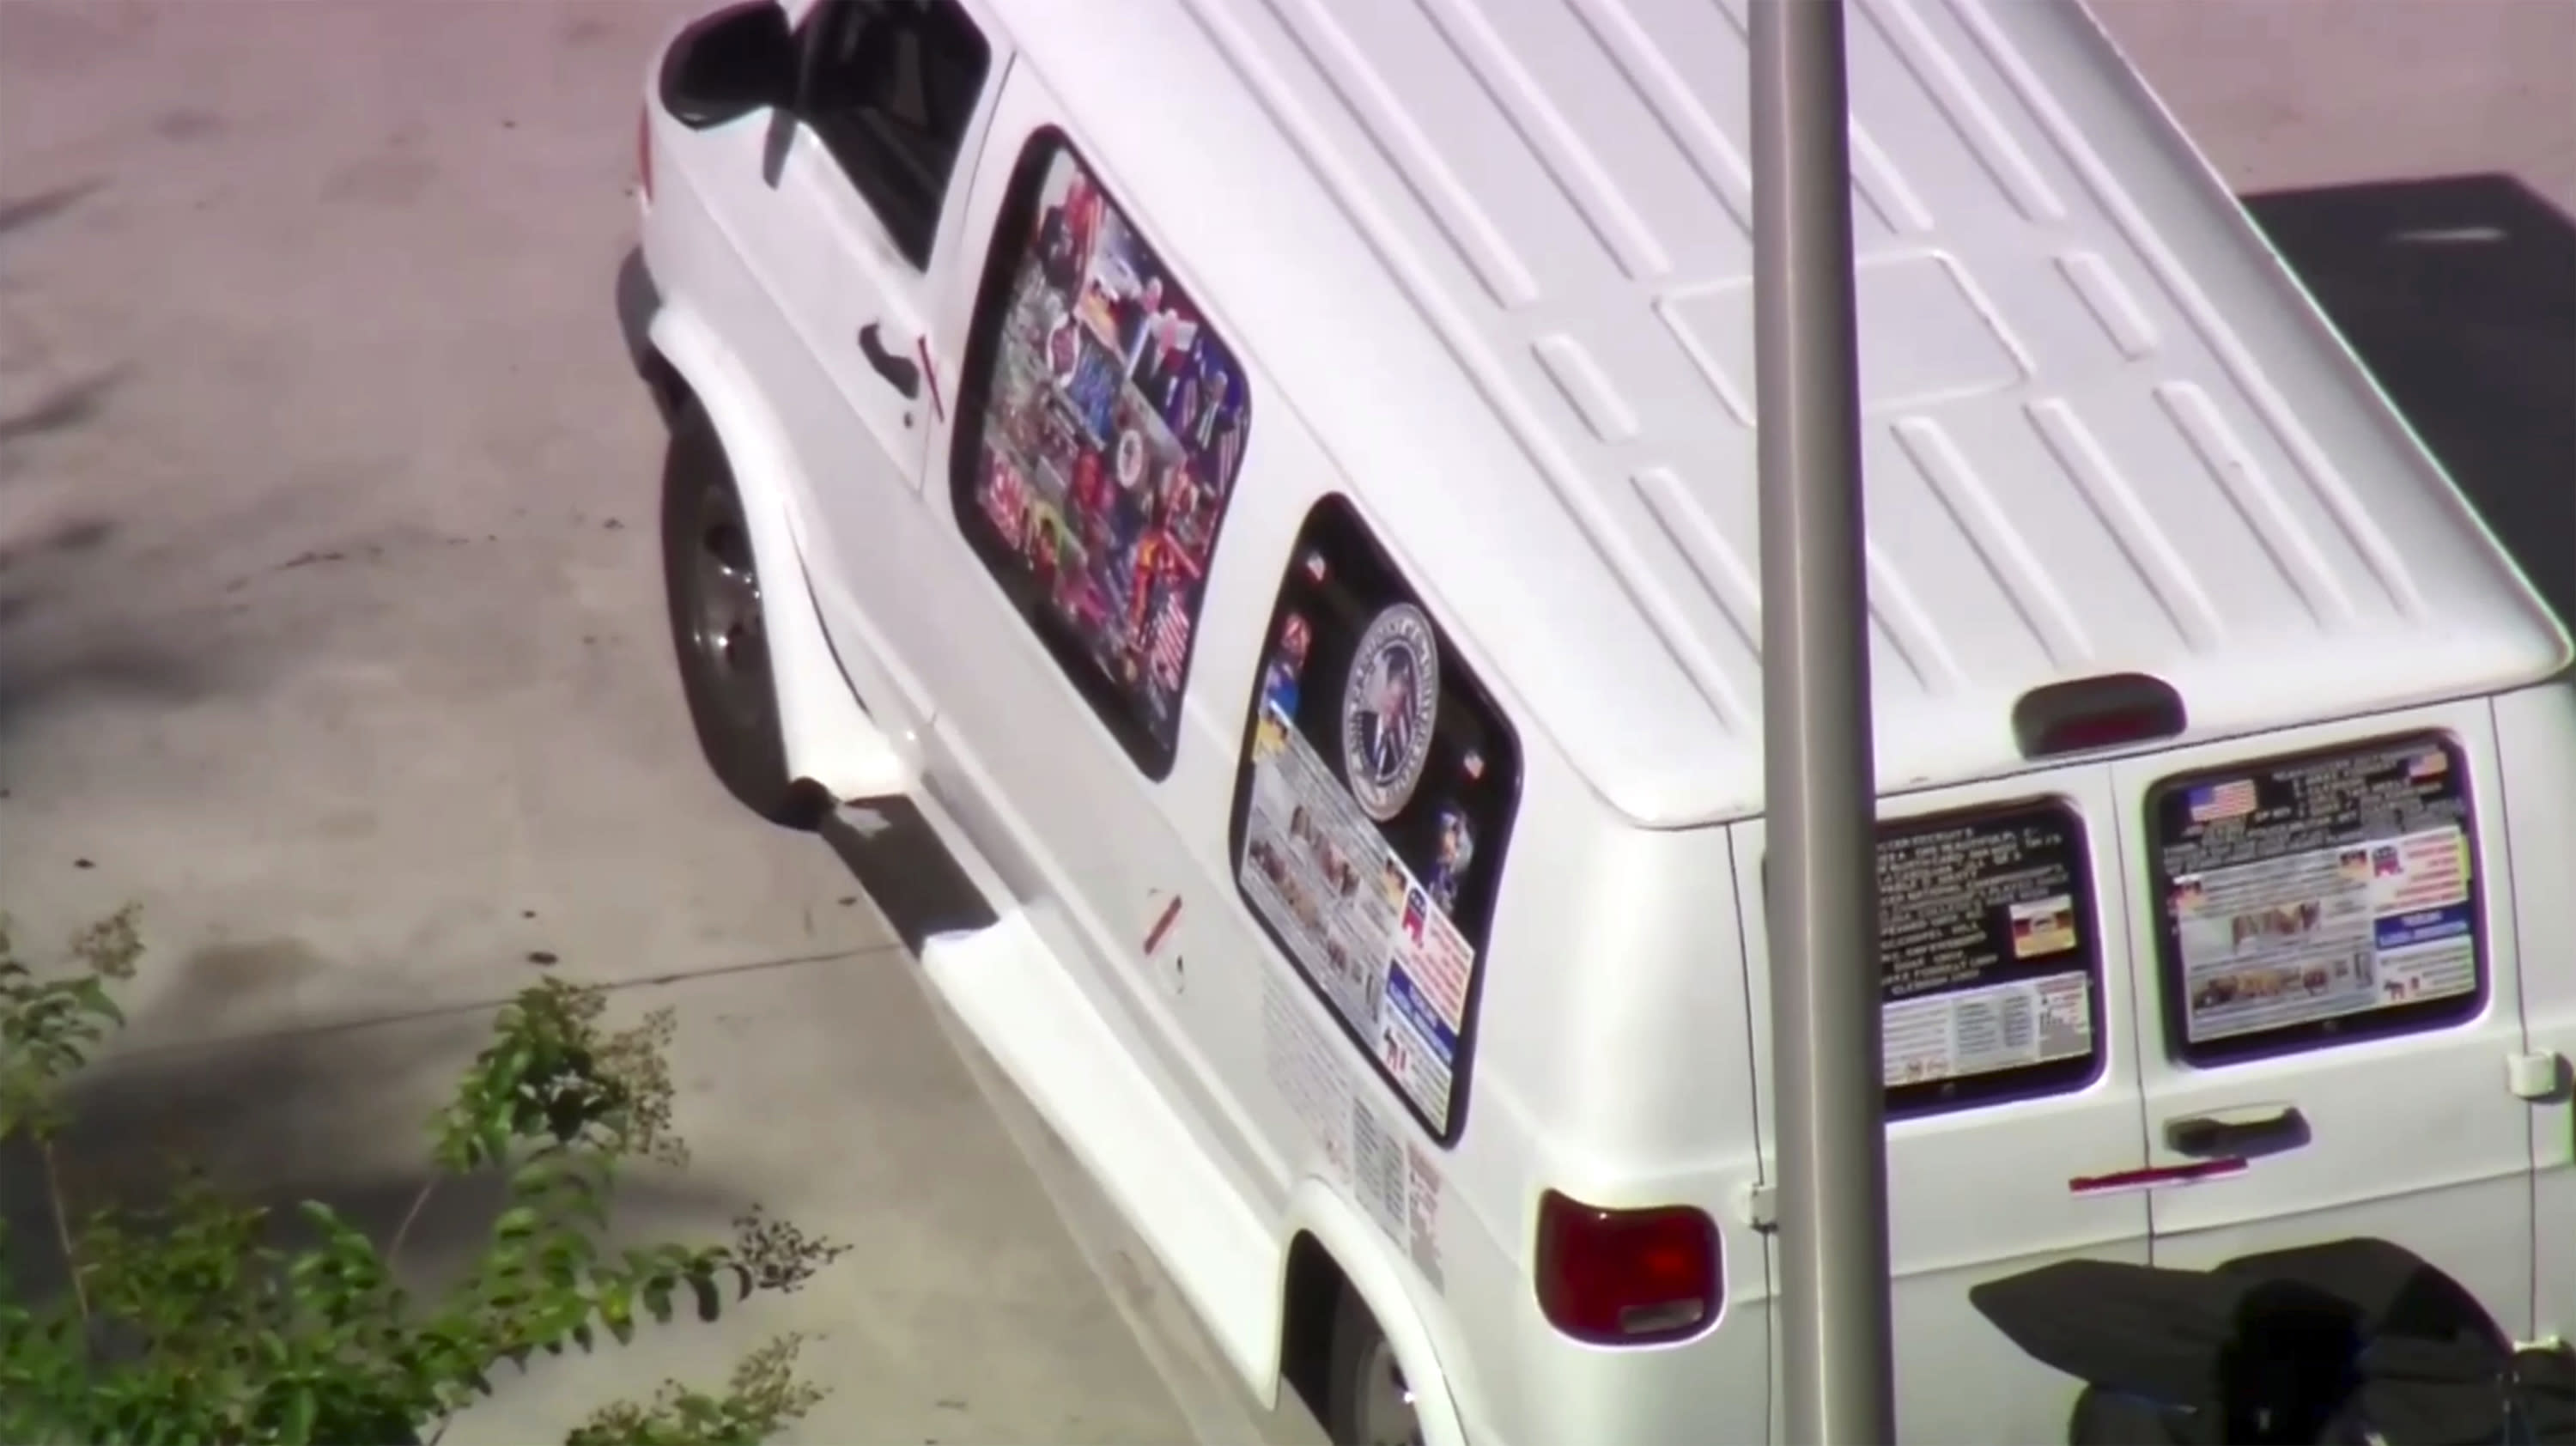 <p>This frame grab from video provided by WPLG-TV shows a van parked in Plantation, Fla., on Friday, Oct. 26, 2018, that federal agents and police officers have been examining in connection with package bombs that were sent to high-profile critics of President Donald Trump. The van has several stickers on the windows, including American flags, decals with logos and text. (Photo: WPLG-TV via AP) </p>